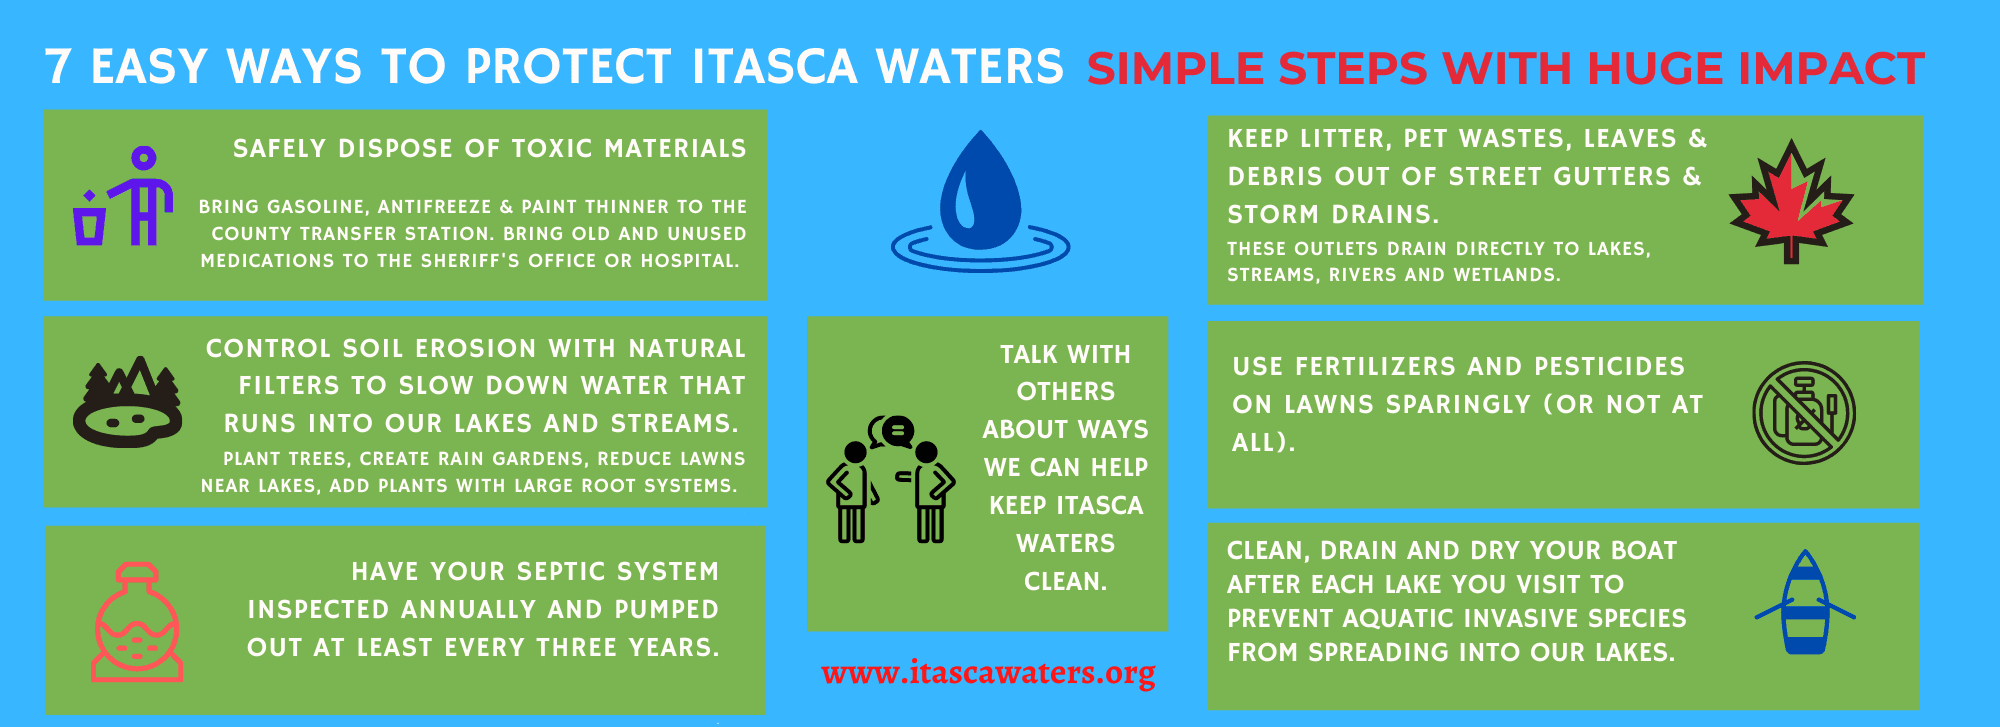 Protect Itasca Waters